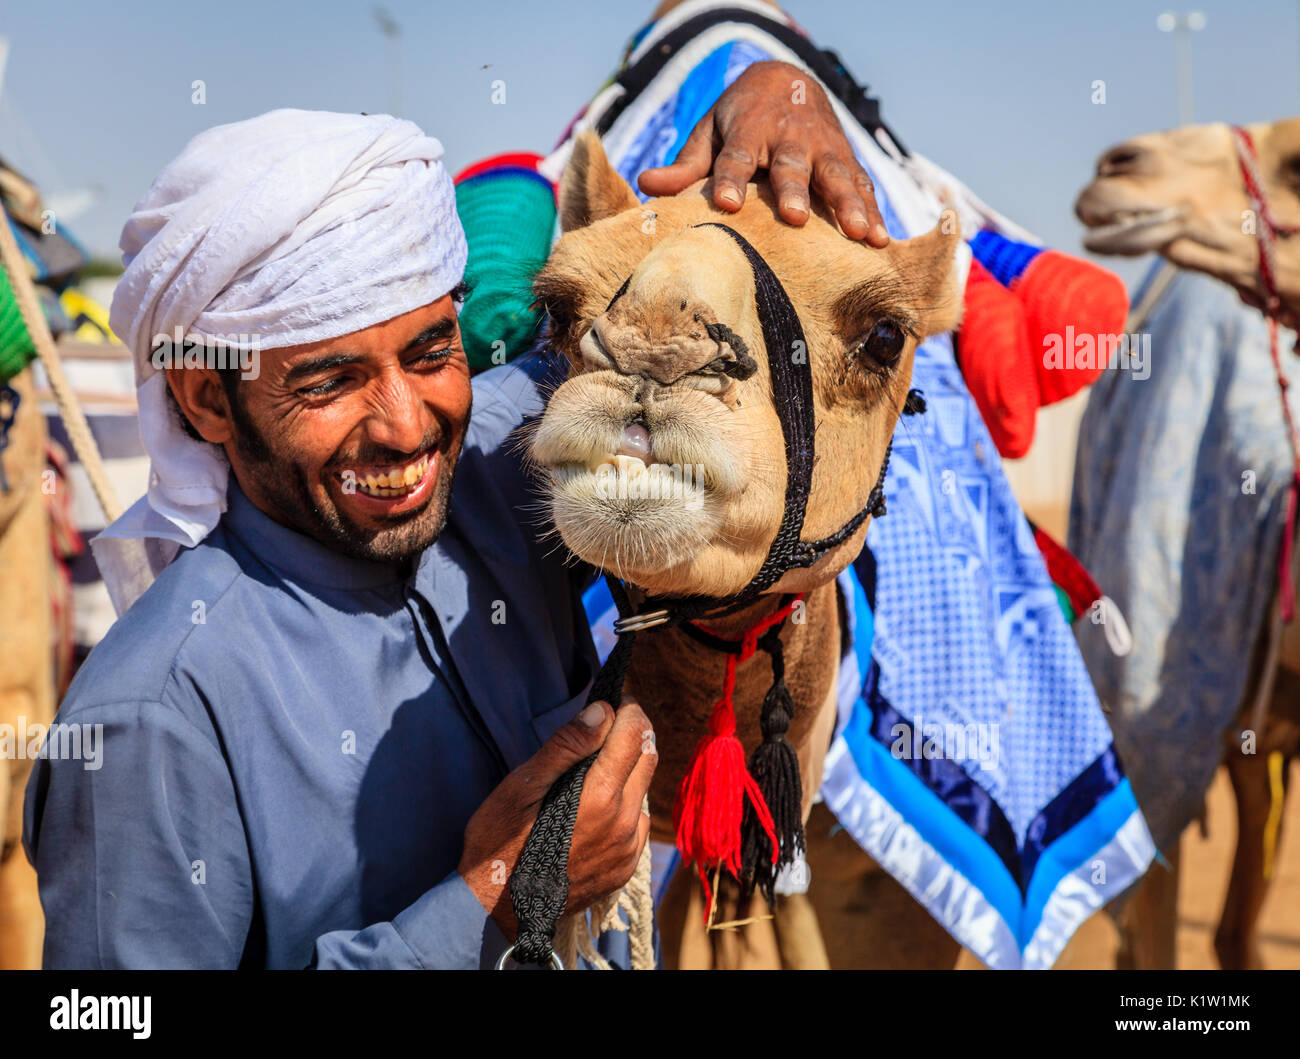 Dubai, United Arab Emirates - March 25, 2016: Camel handler with his animal at Dubai Camel Racing Club - Stock Image